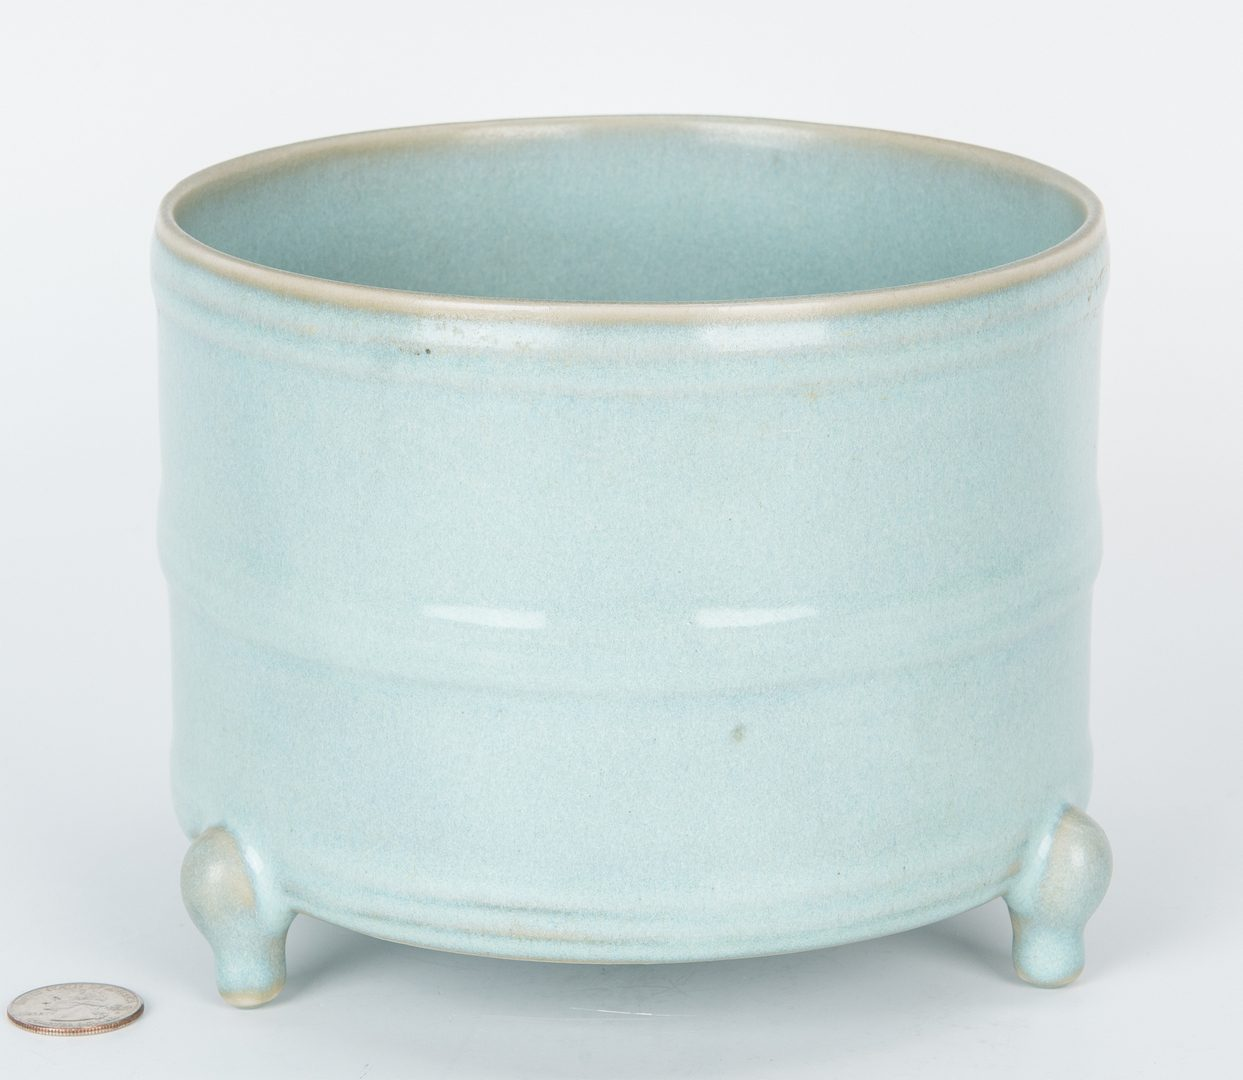 Lot 216: Chinese Ding Style Vase & Longquan Celadon Censer, 2 items